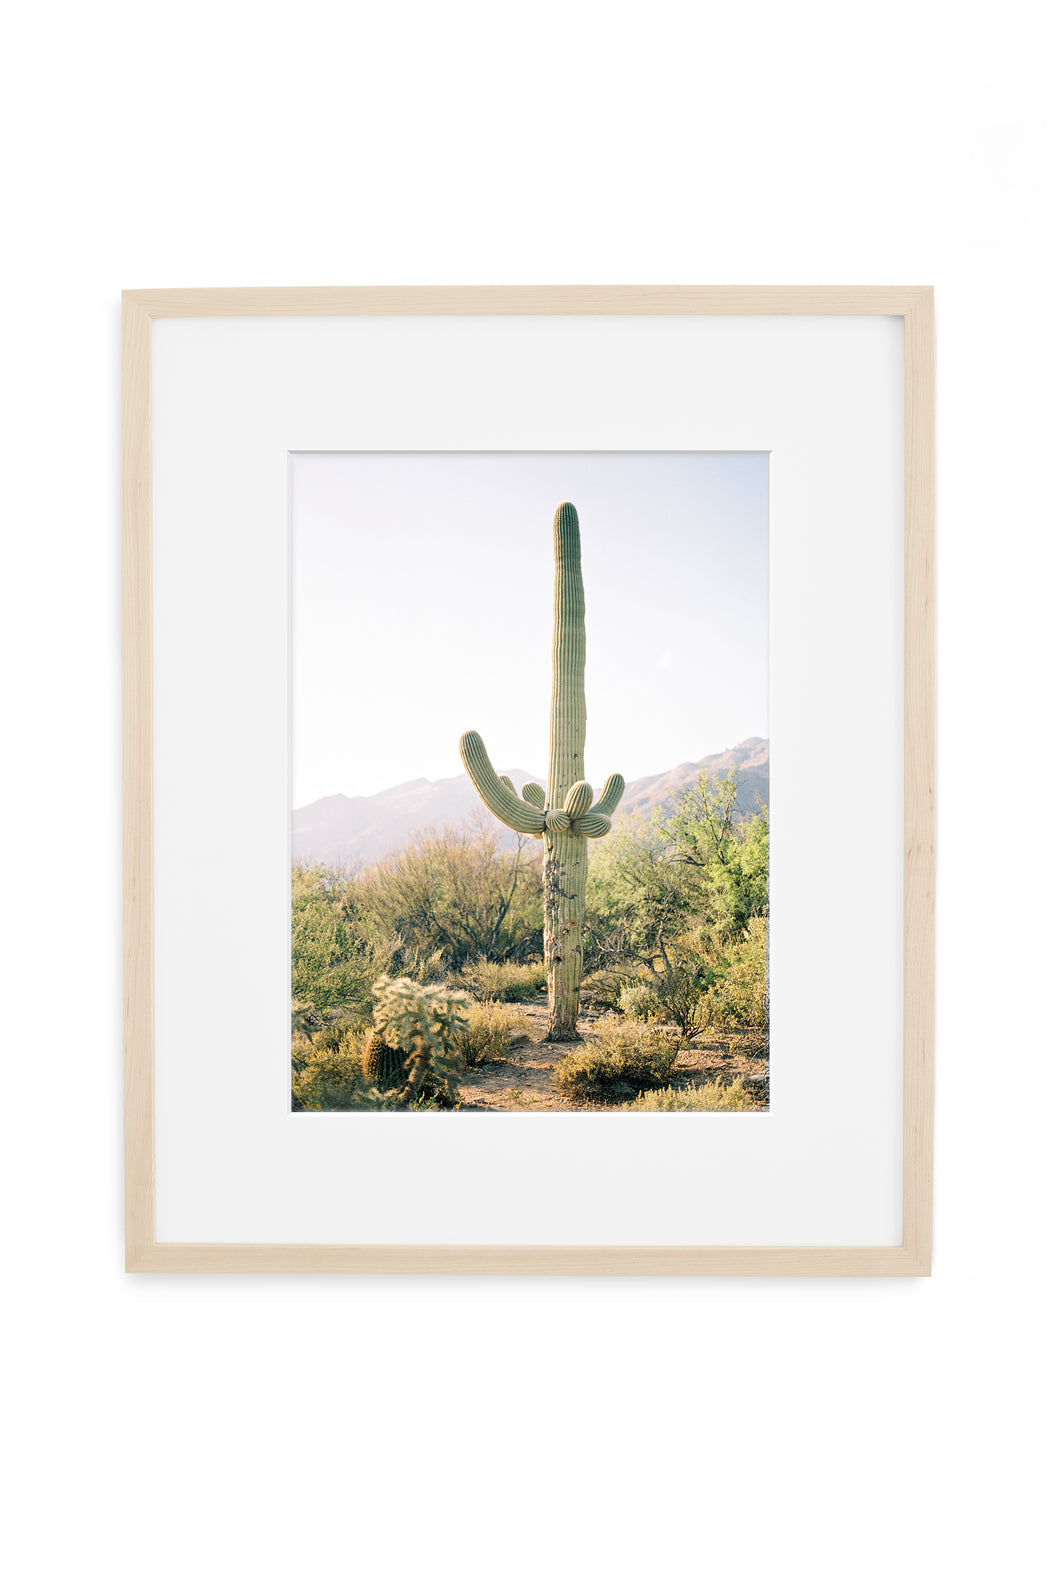 tucson arizona saguaro cactus film photography print